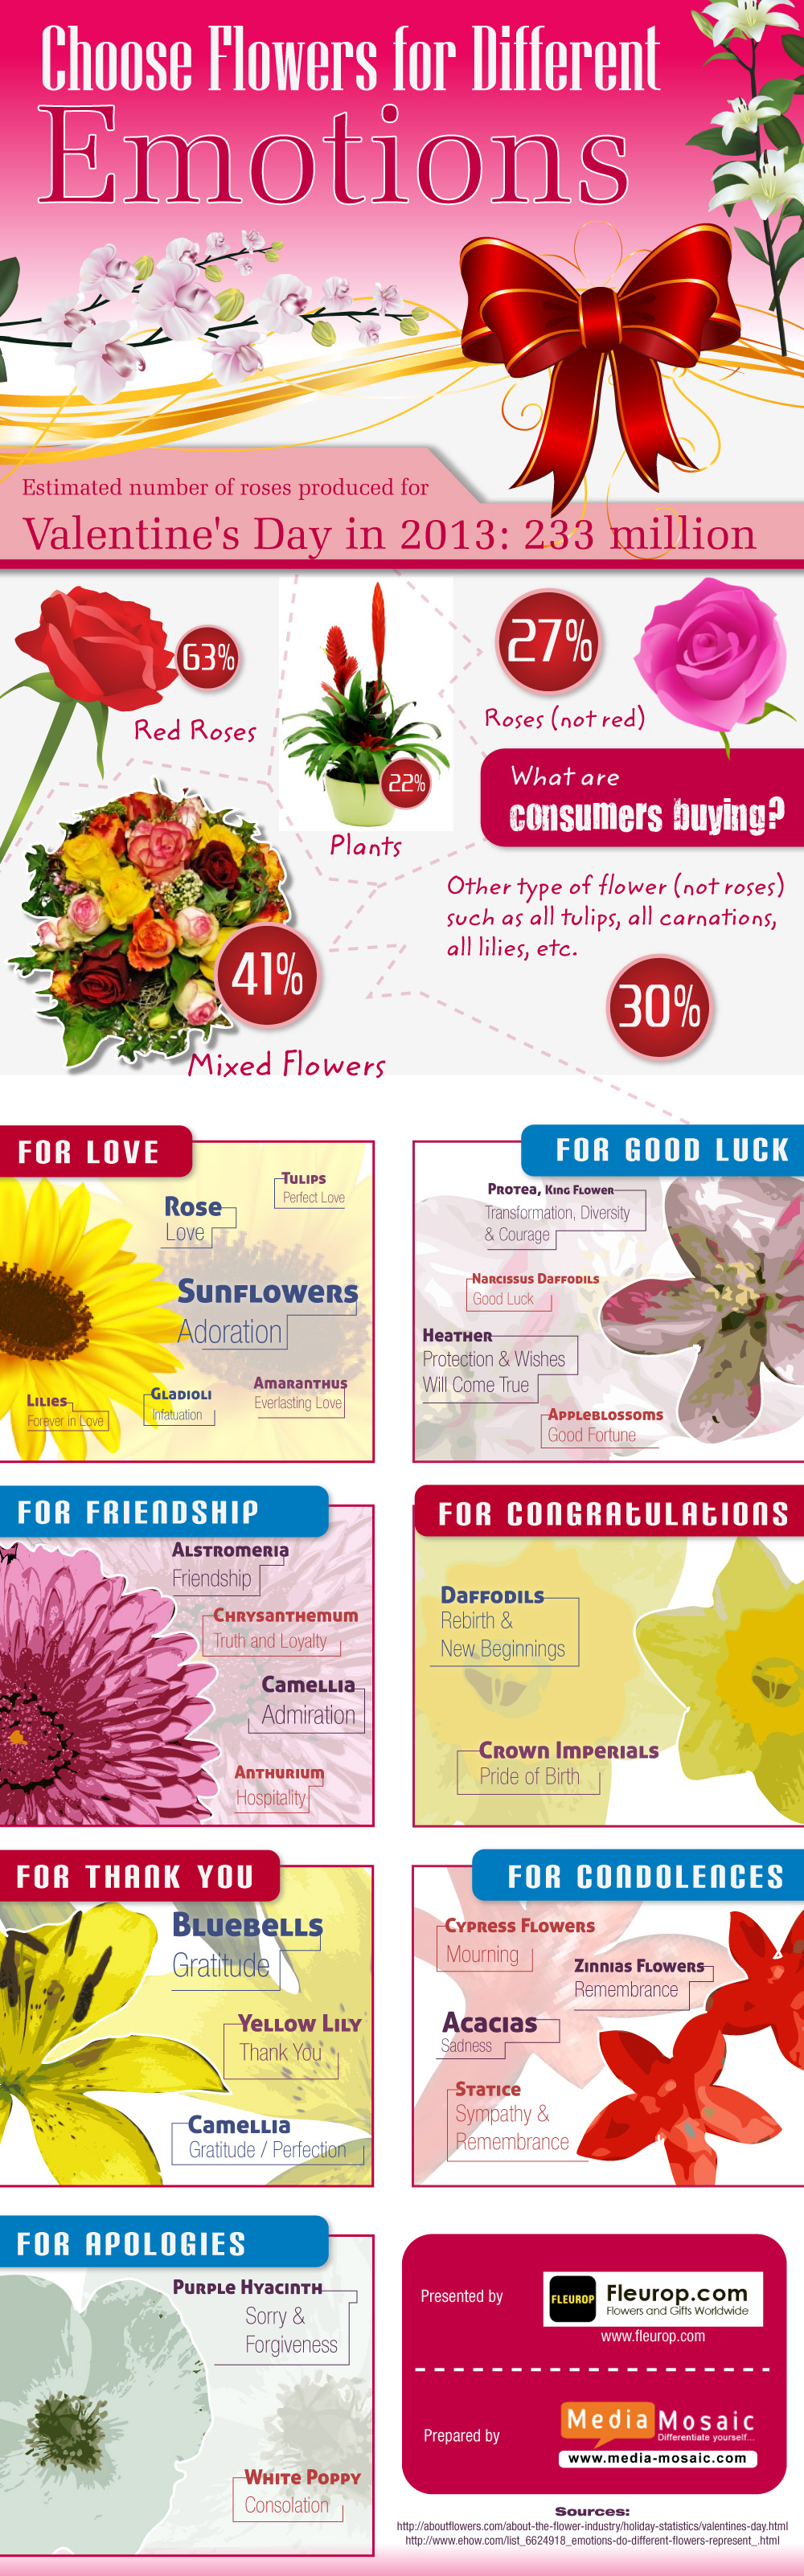 Expressing your Heart iest Emotions Through Flowers on Valentine's Day image Choose Flowers for Different Emotions